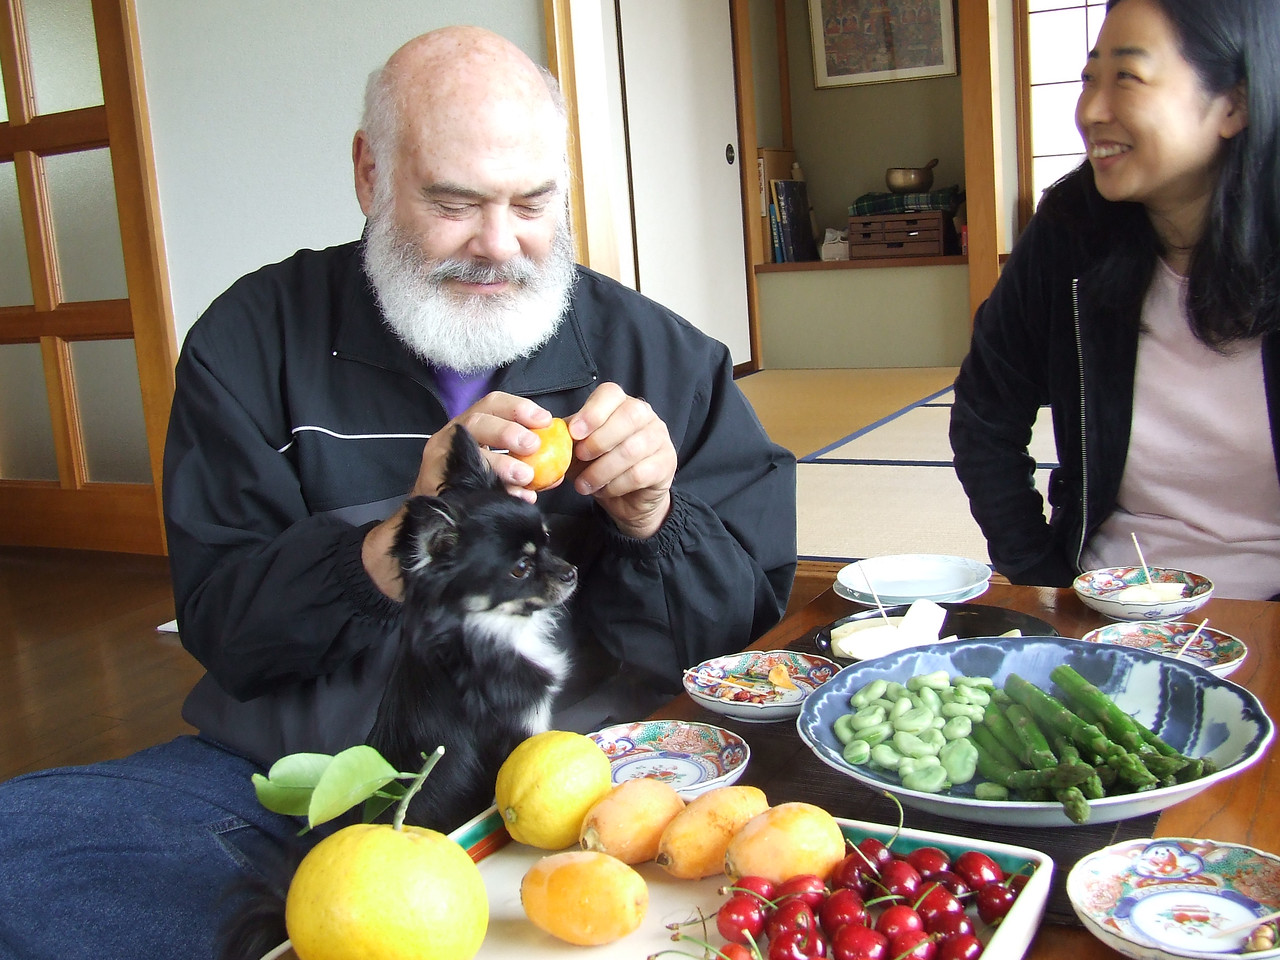 I'm enjoying fresh fruits and vegetables at the home of Keiichi Ueno, who has translated all of my books into Japanese. He and his wife, Harumi Sugiwara, have a beautiful home and garden in Ito City.